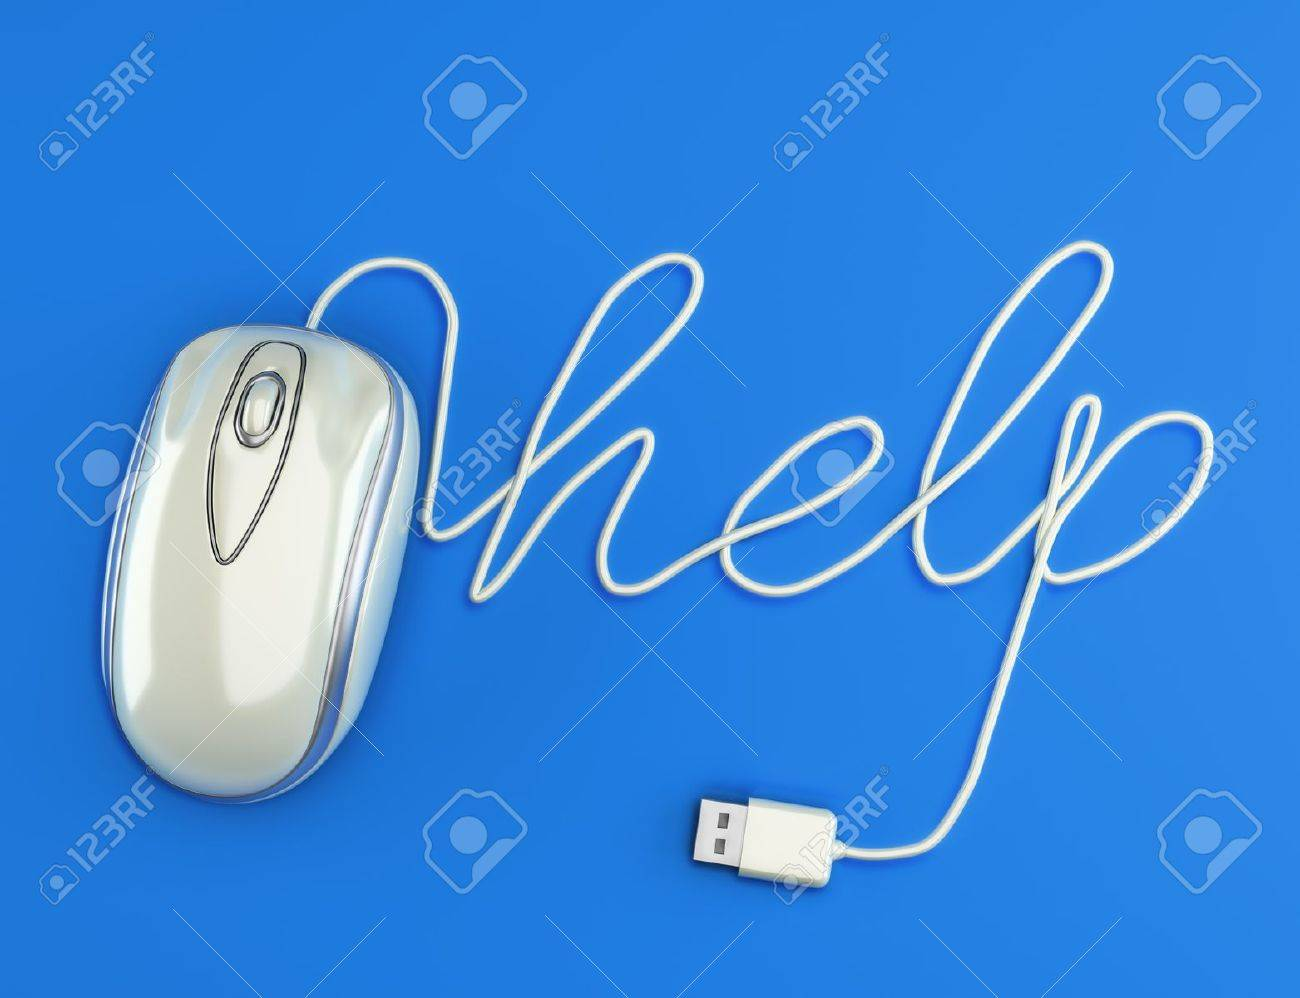 Computer help, white mouse with the cable spelling help with a blue background Stock Photo - 13996188